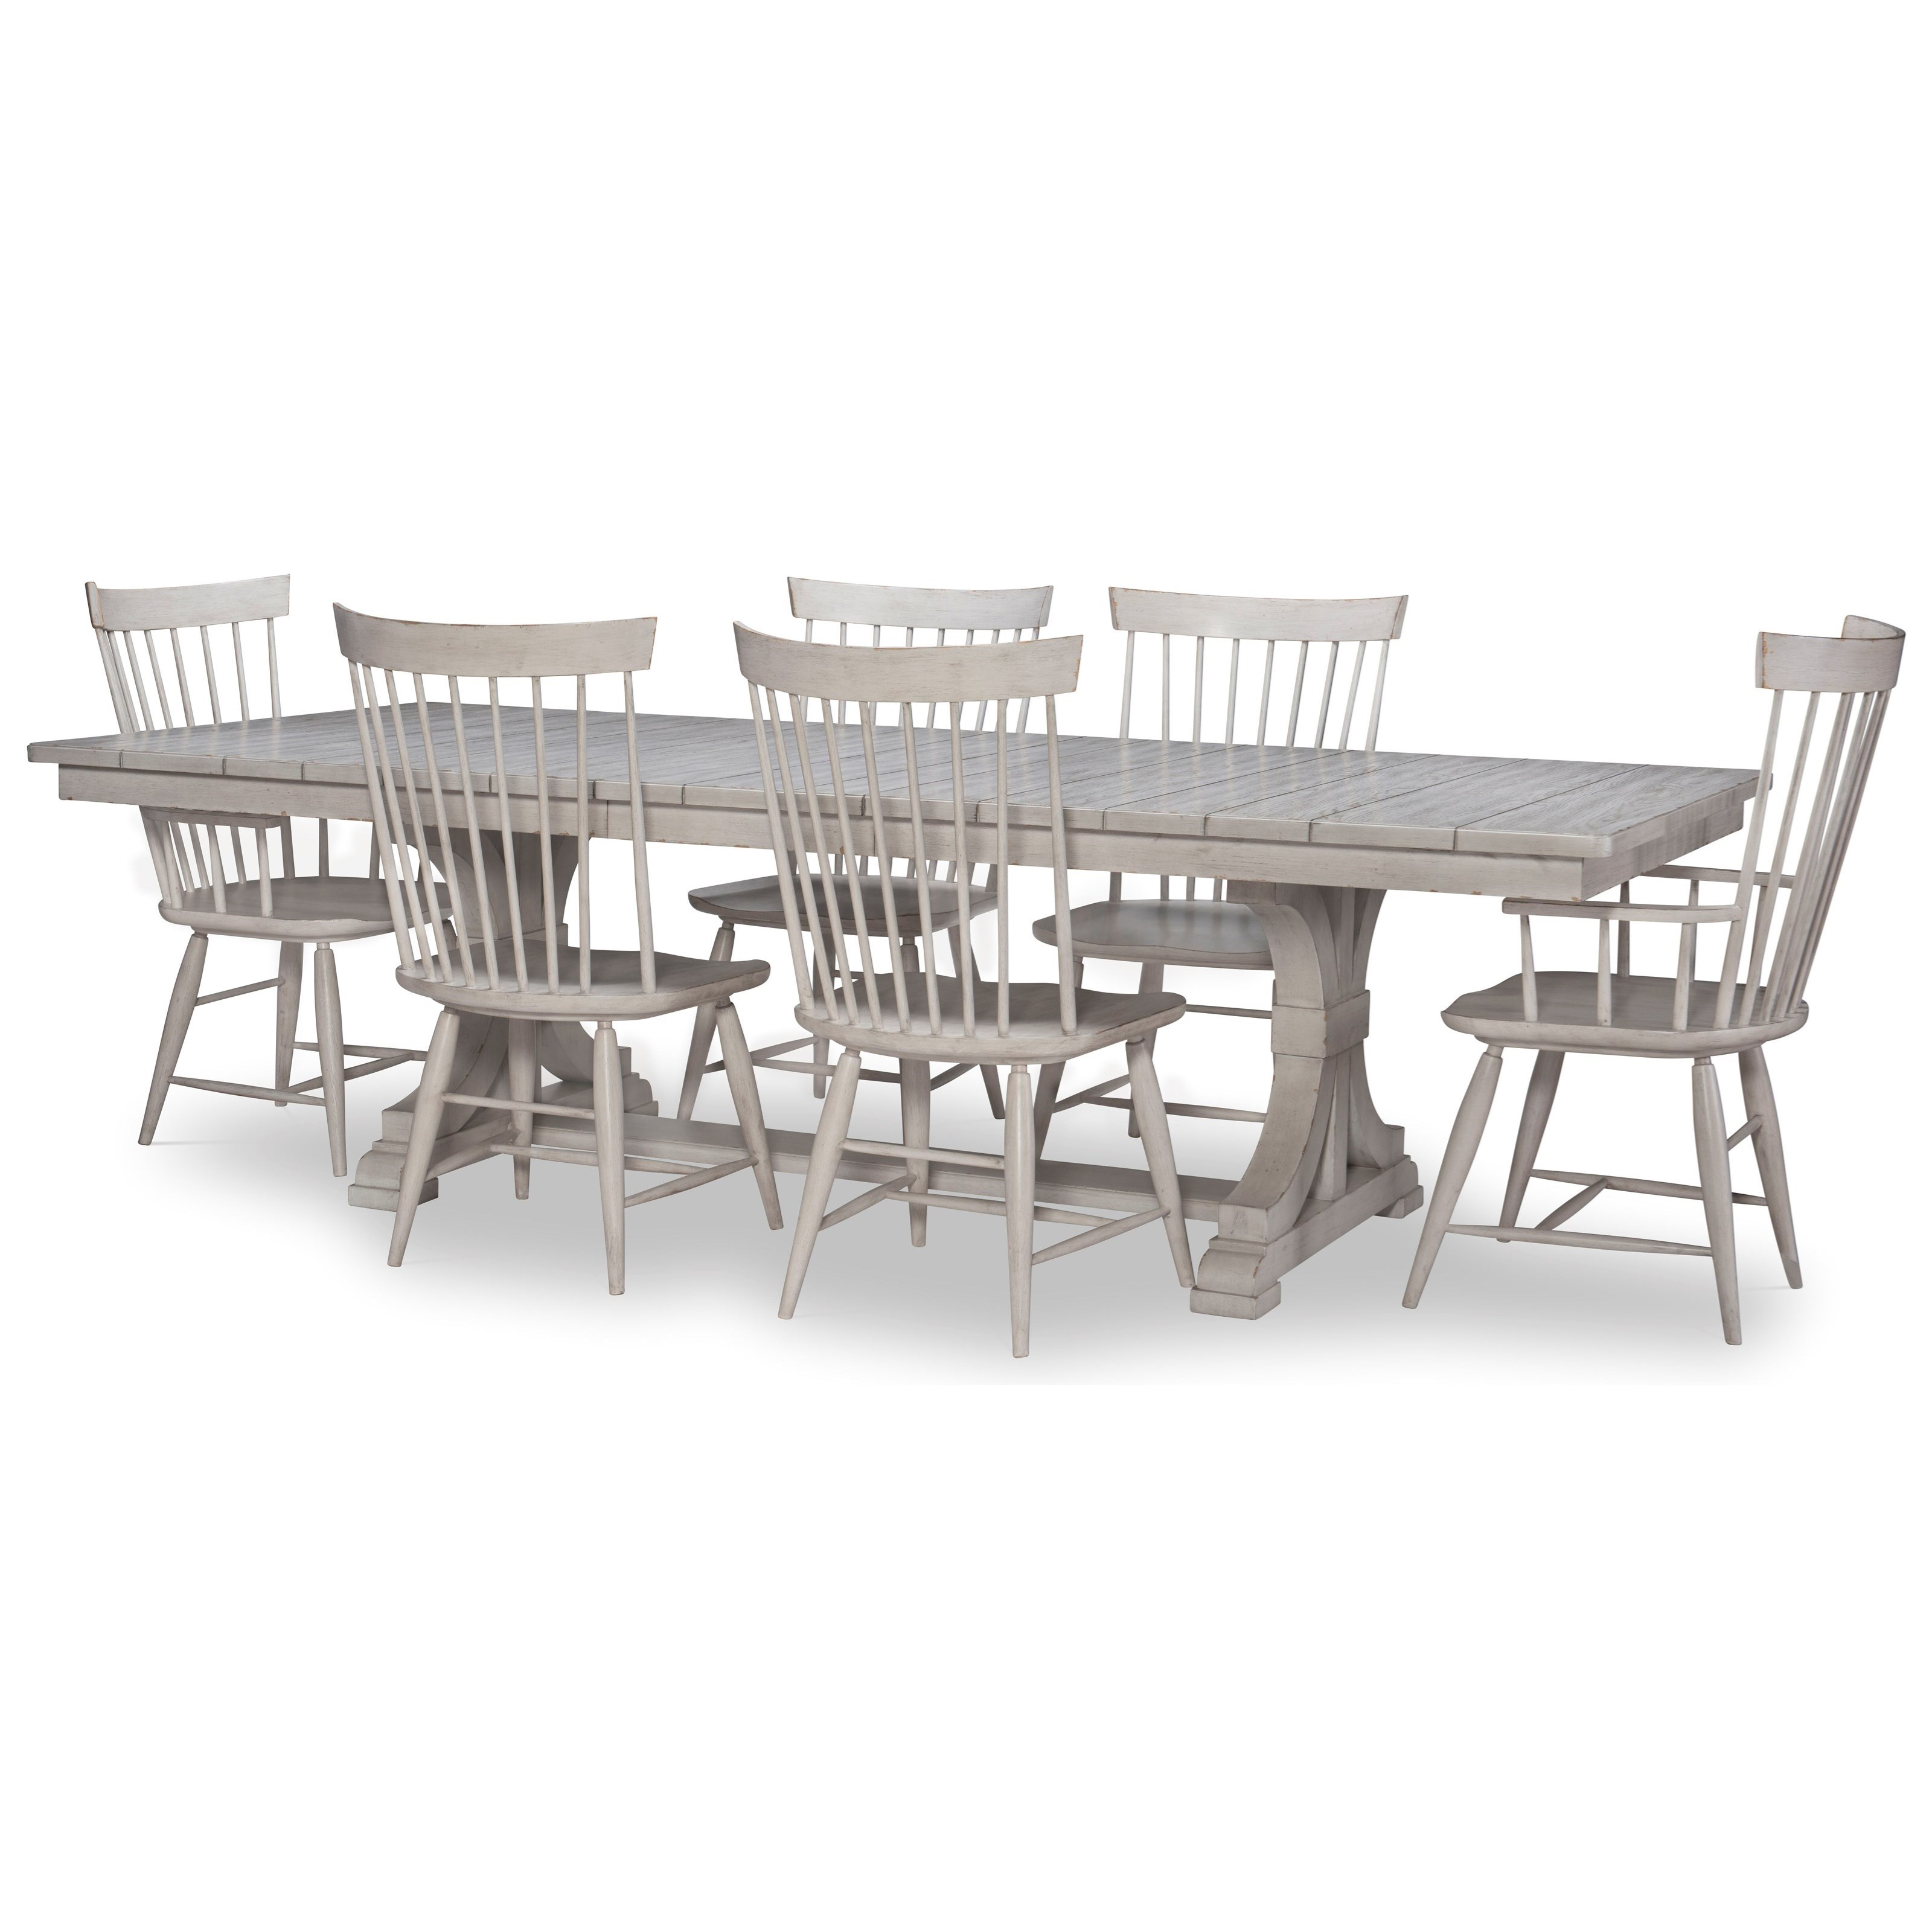 Belhaven 7-Piece Table and Chair Set by Legacy Classic at Johnny Janosik